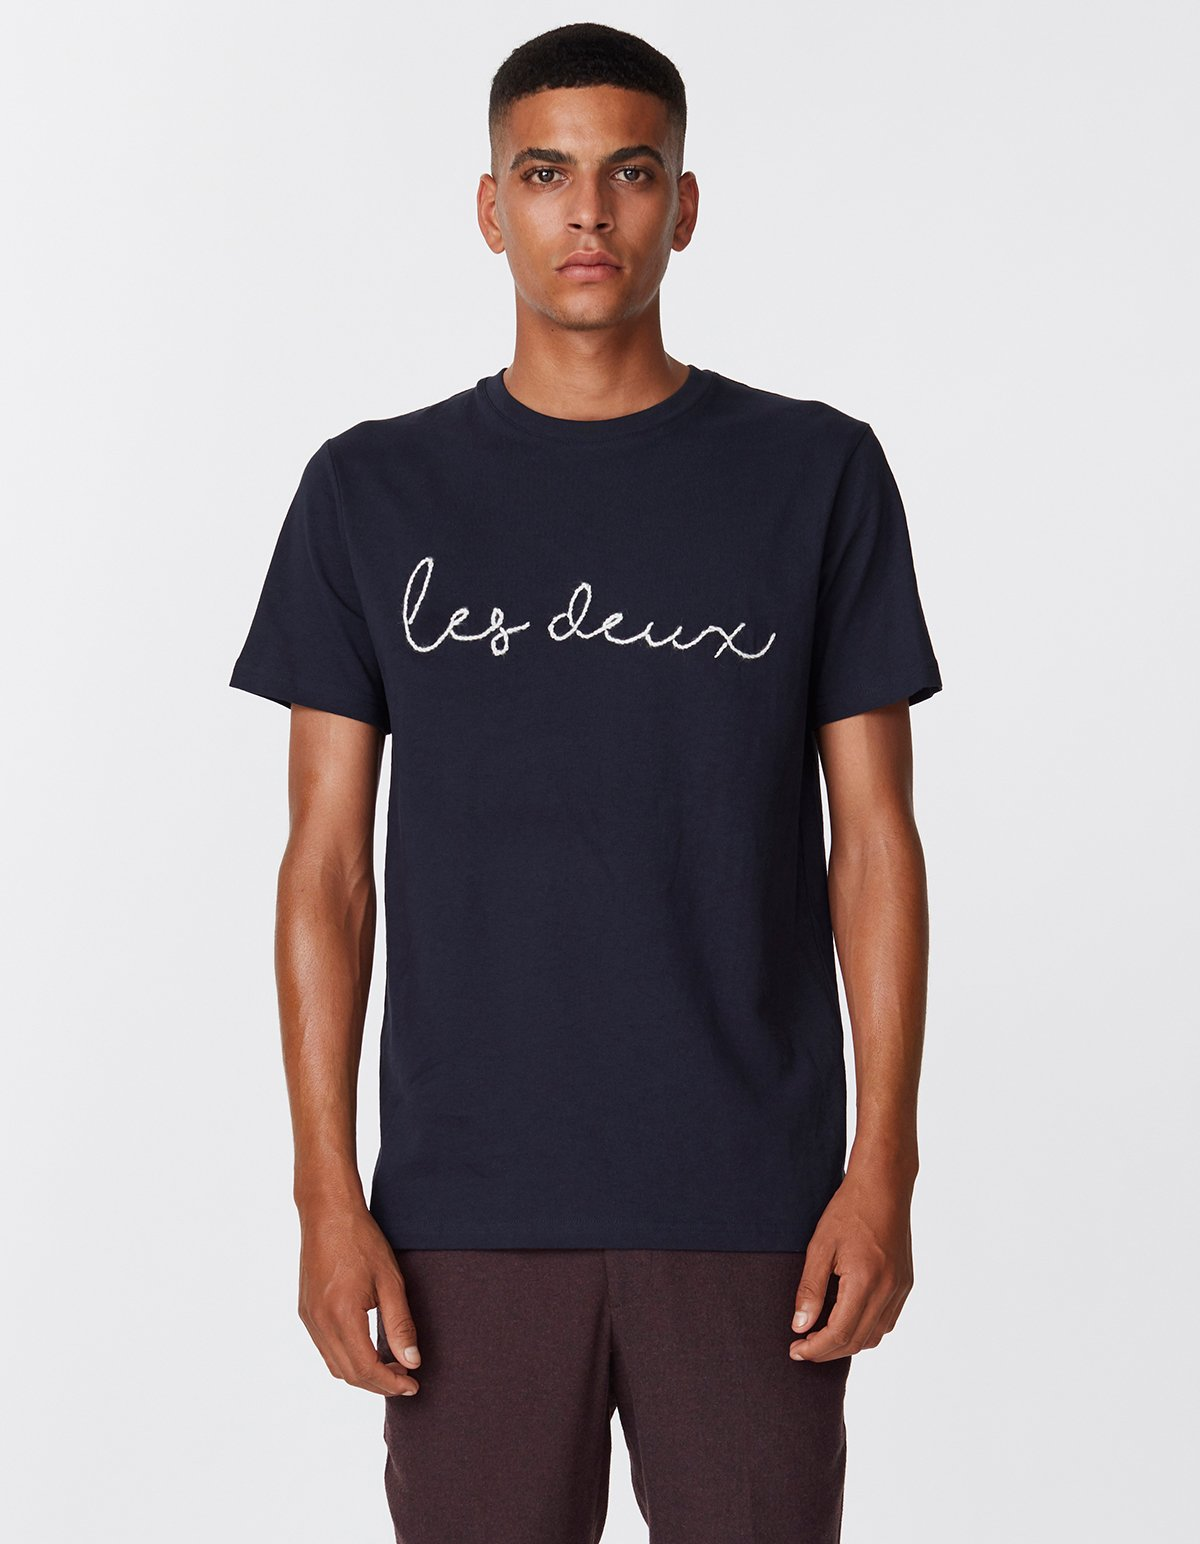 Les deux grand t-shirt dark navy off white